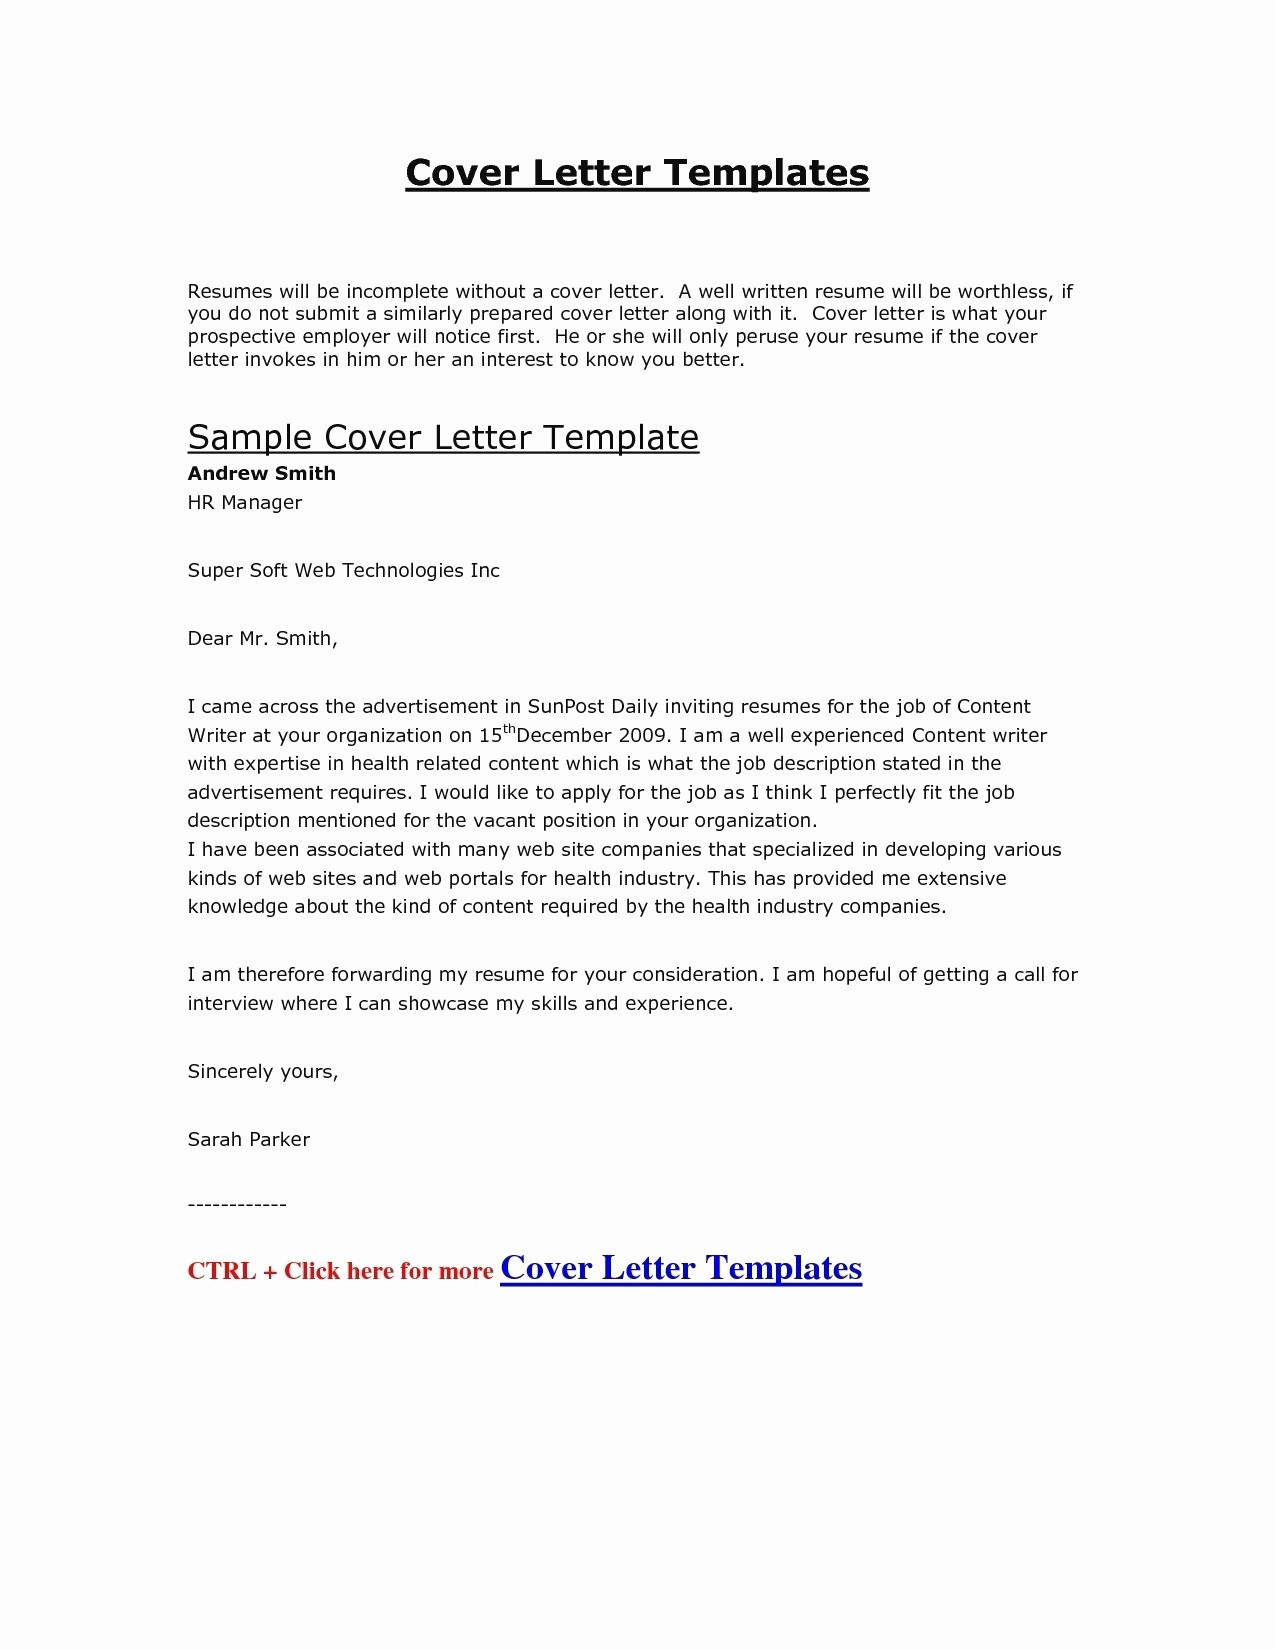 Cover Letter format Template - Job Application Letter format Template Copy Cover Letter Template Hr